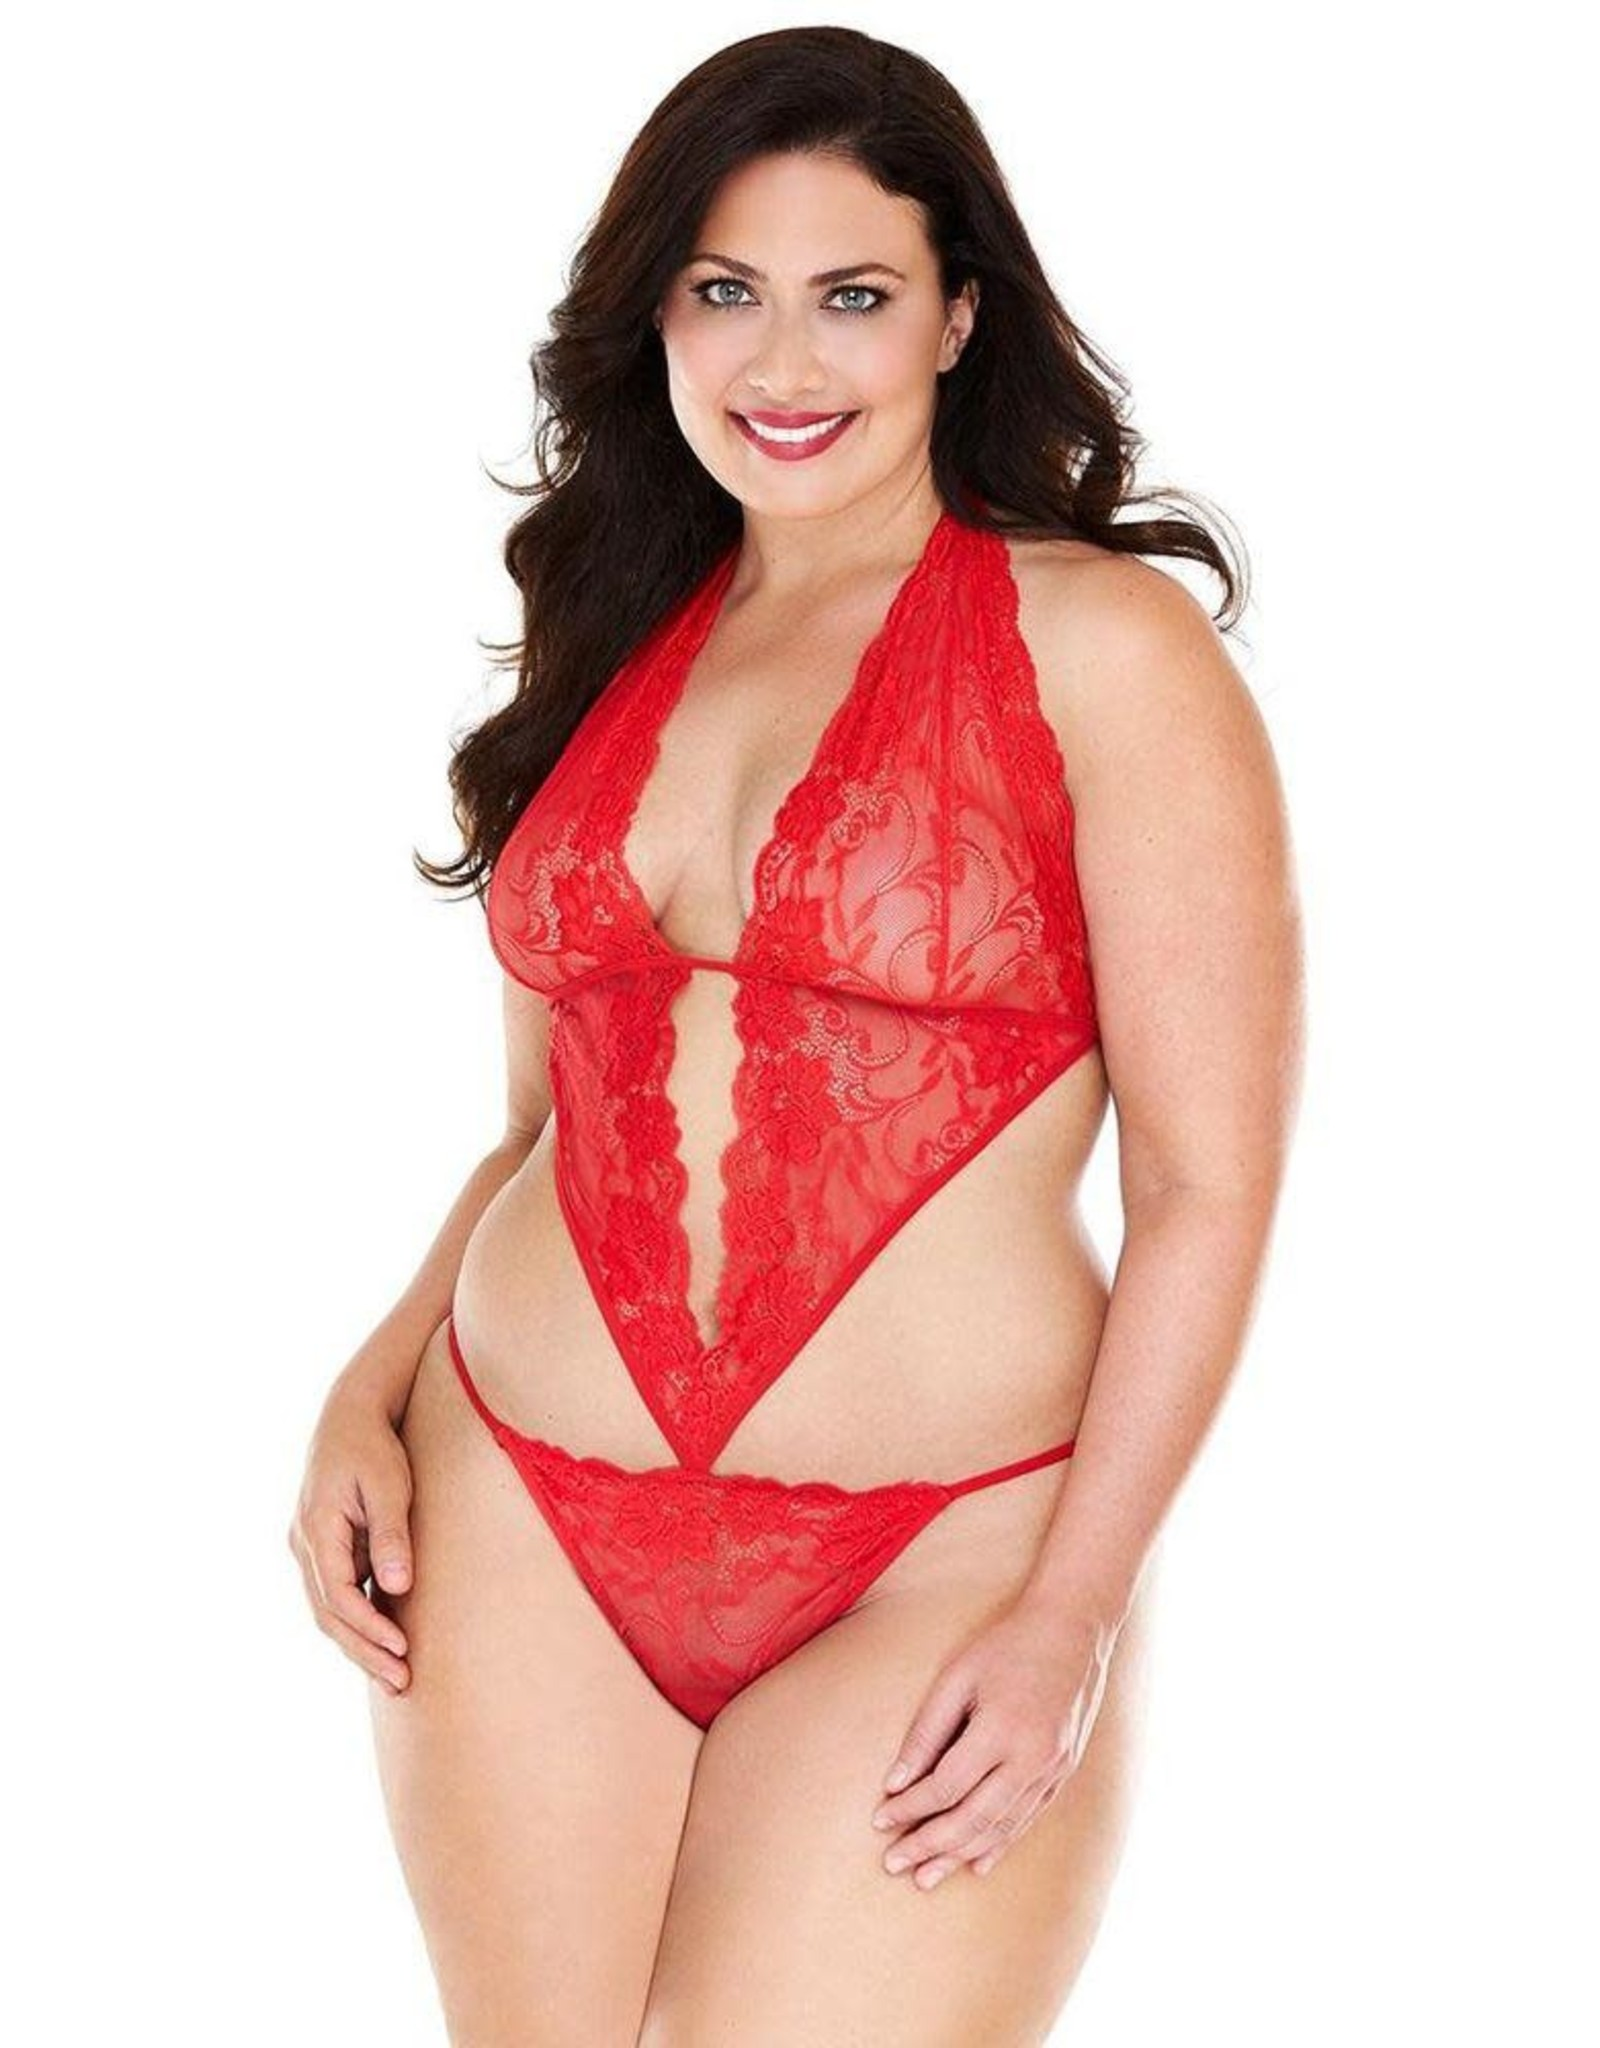 REMOTE VIBRATING RED LACE AND MESH TEDDY OSXL